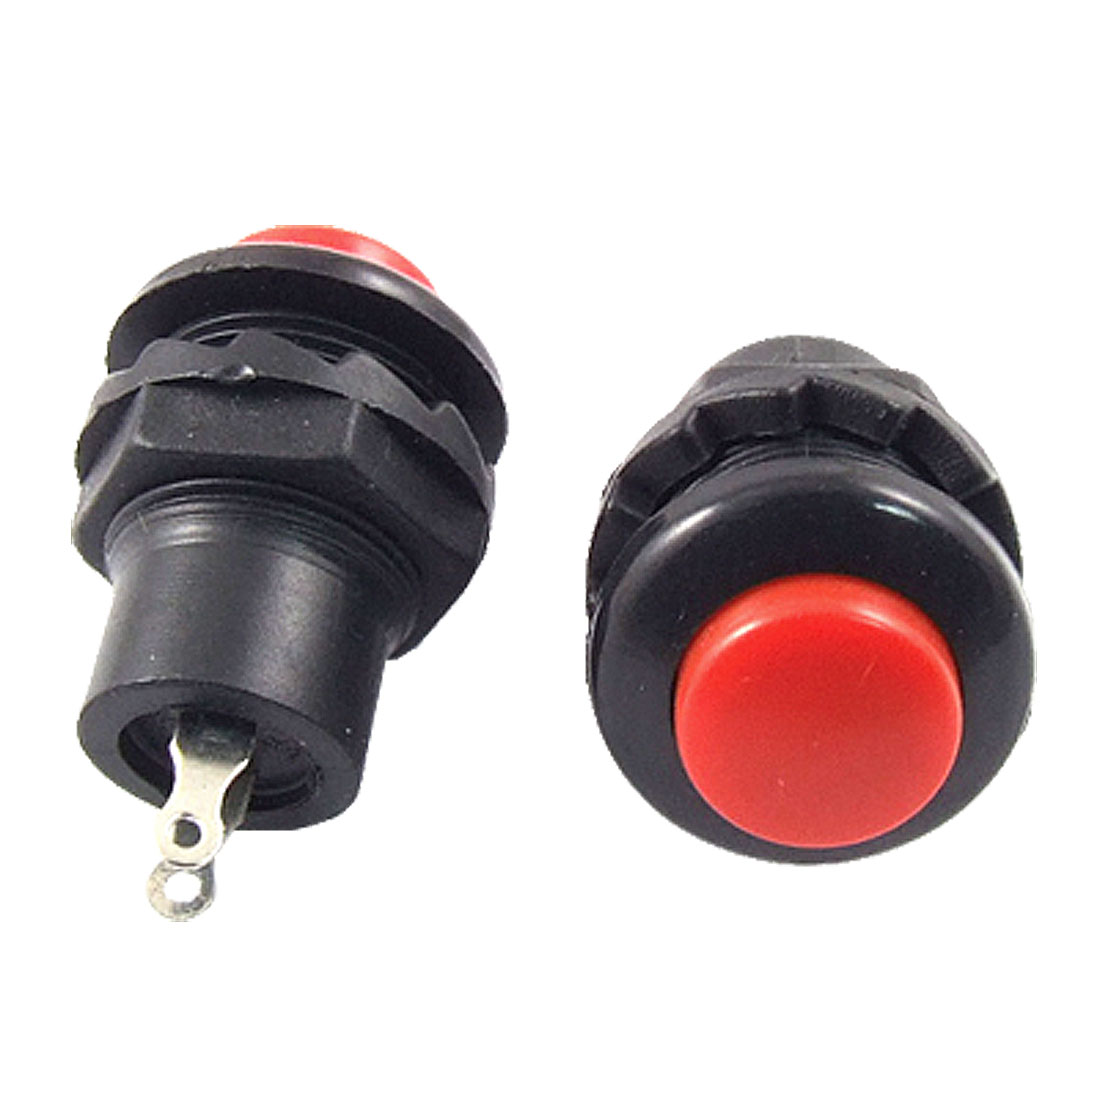 3 Pcs x 2Terminals SPST OFF-(ON) N/O NO Red Round Cap Momentary Push Button Switch